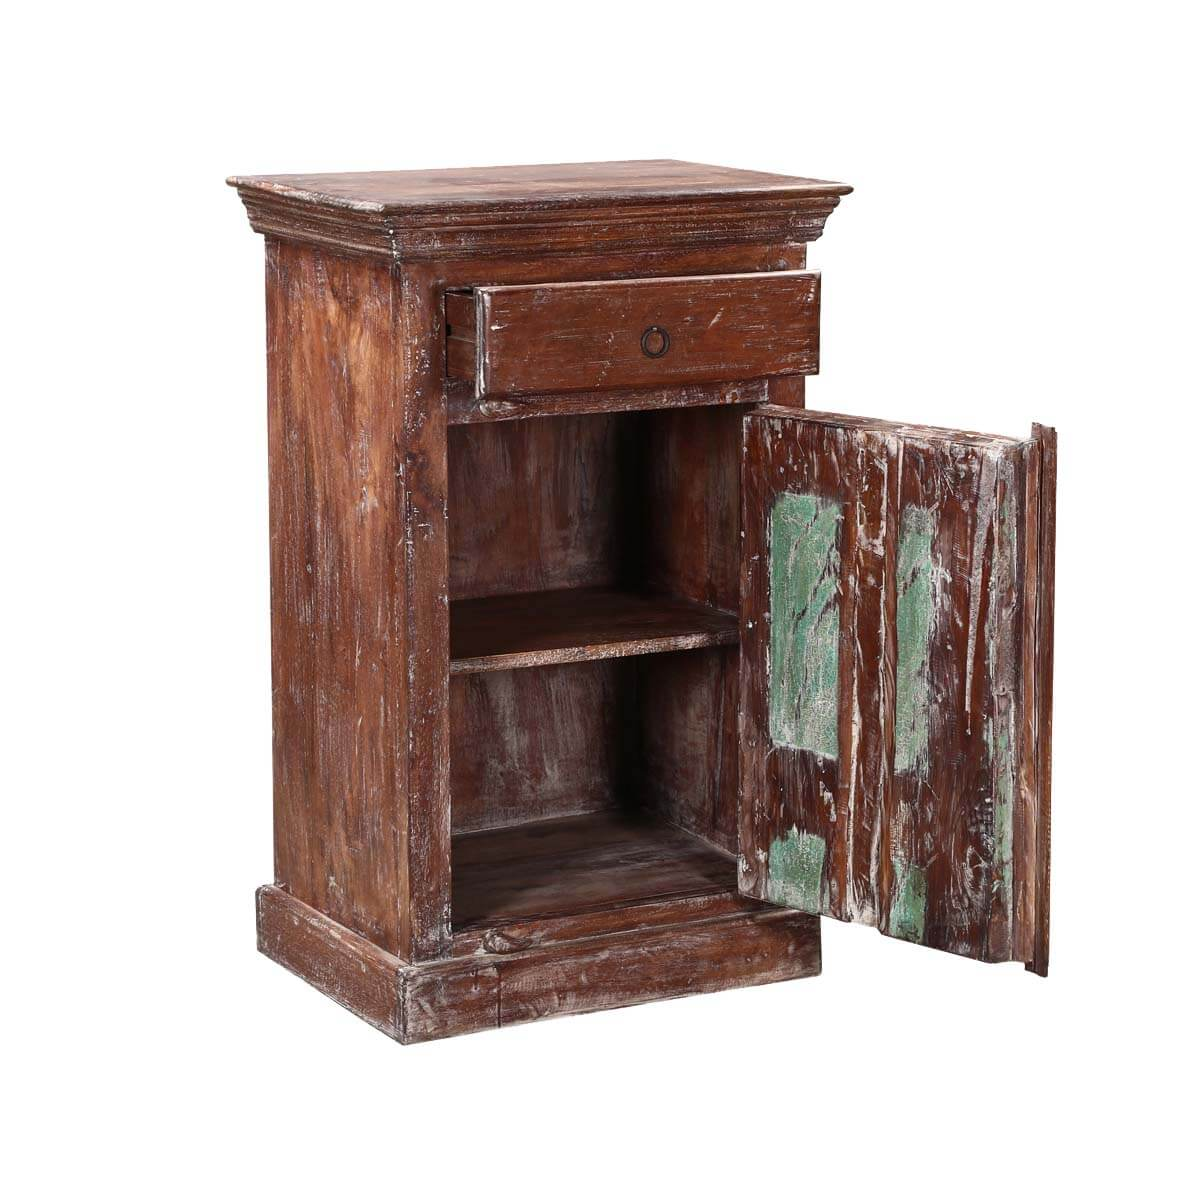 Turquoise trail 24 rustic nightstand with 1 door and 1 drawer for A p furniture trail